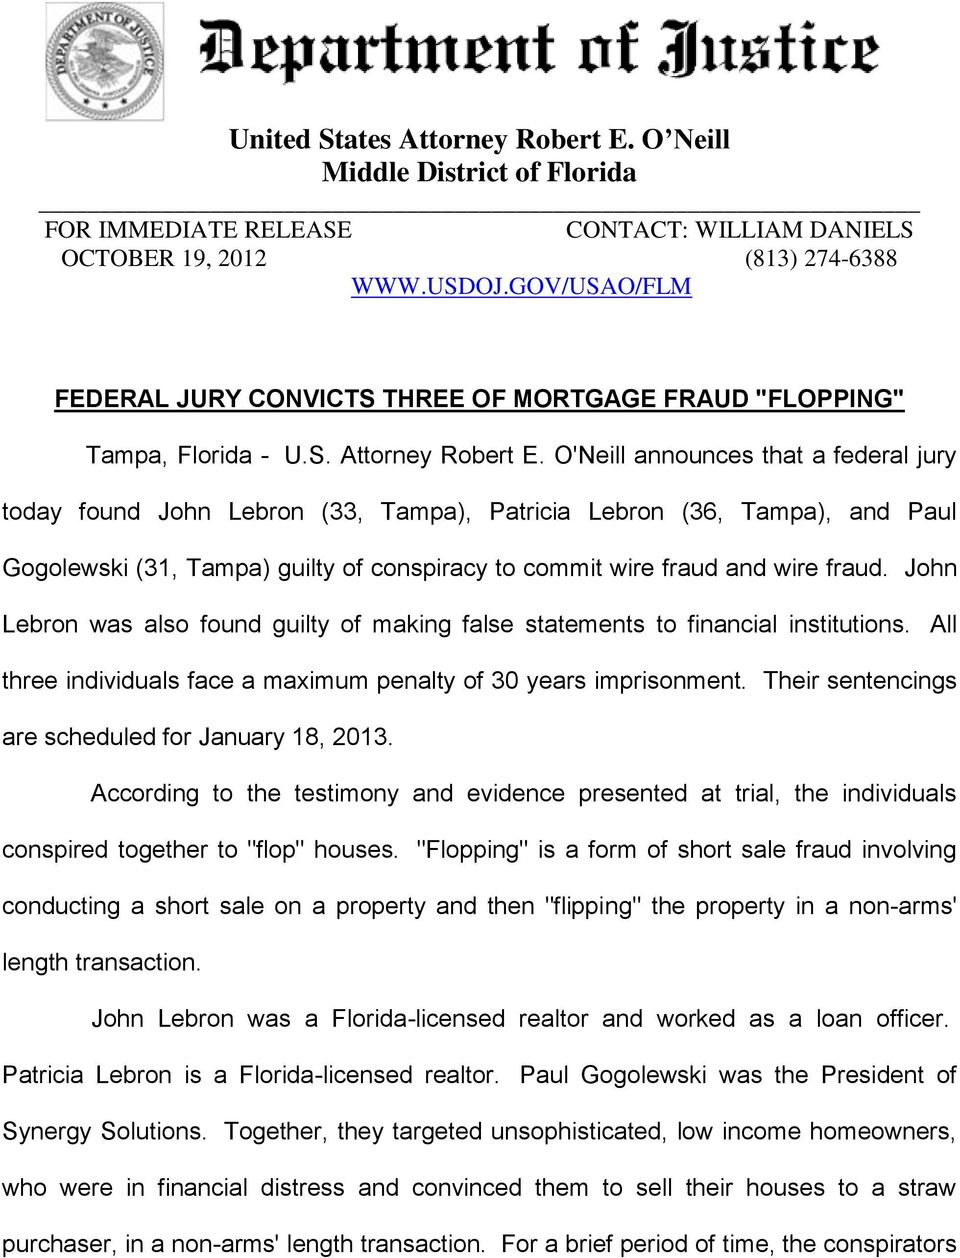 O'Neill announces that a federal jury today found John Lebron (33, Tampa), Patricia Lebron (36, Tampa), and Paul Gogolewski (31, Tampa) guilty of conspiracy to commit wire fraud and wire fraud.